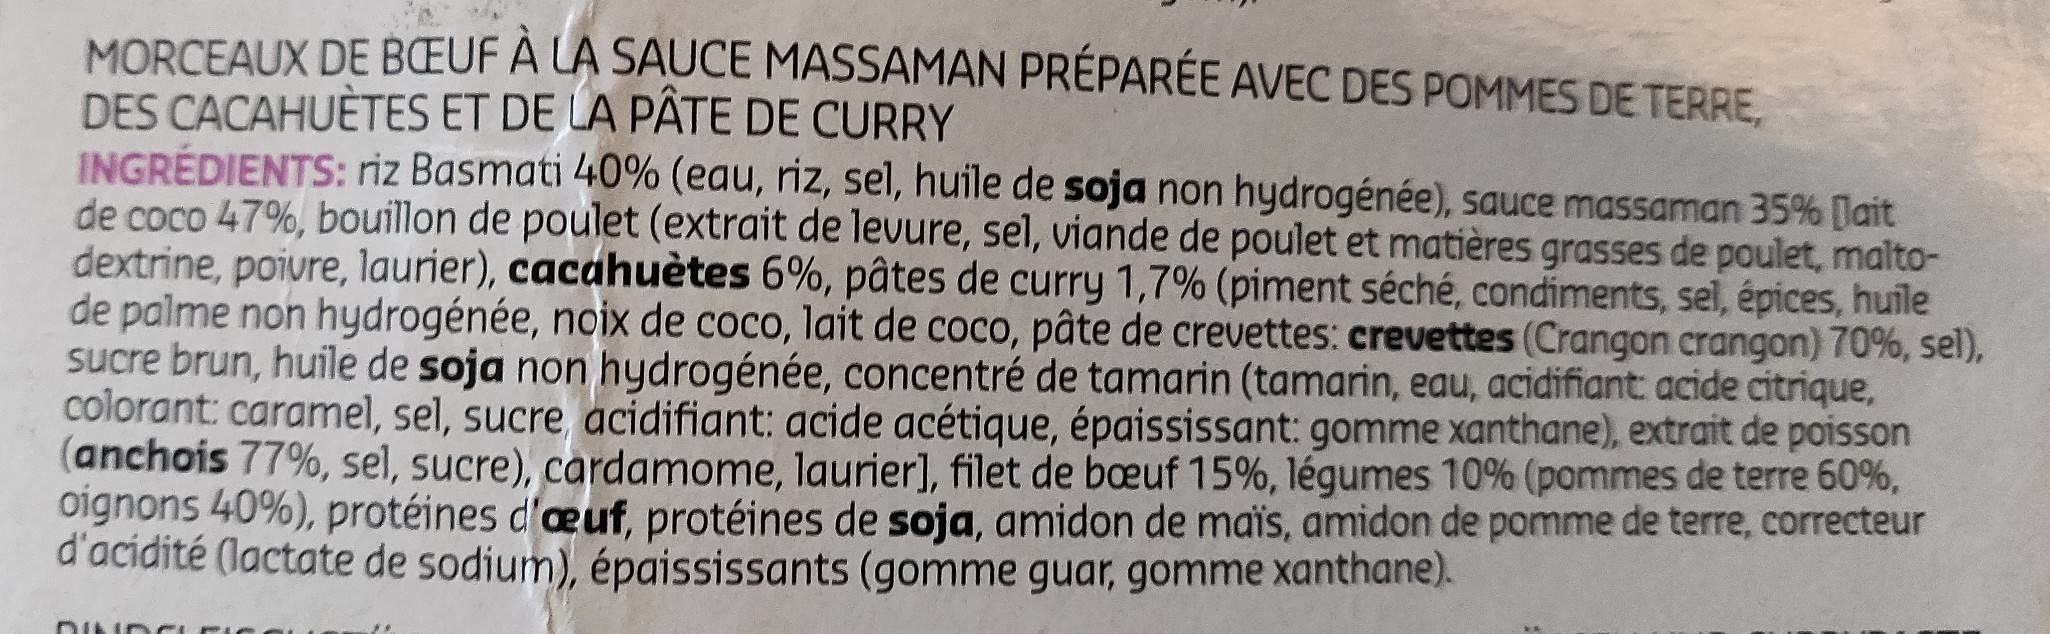 Massa man beef curry with rice - Ingrediënten